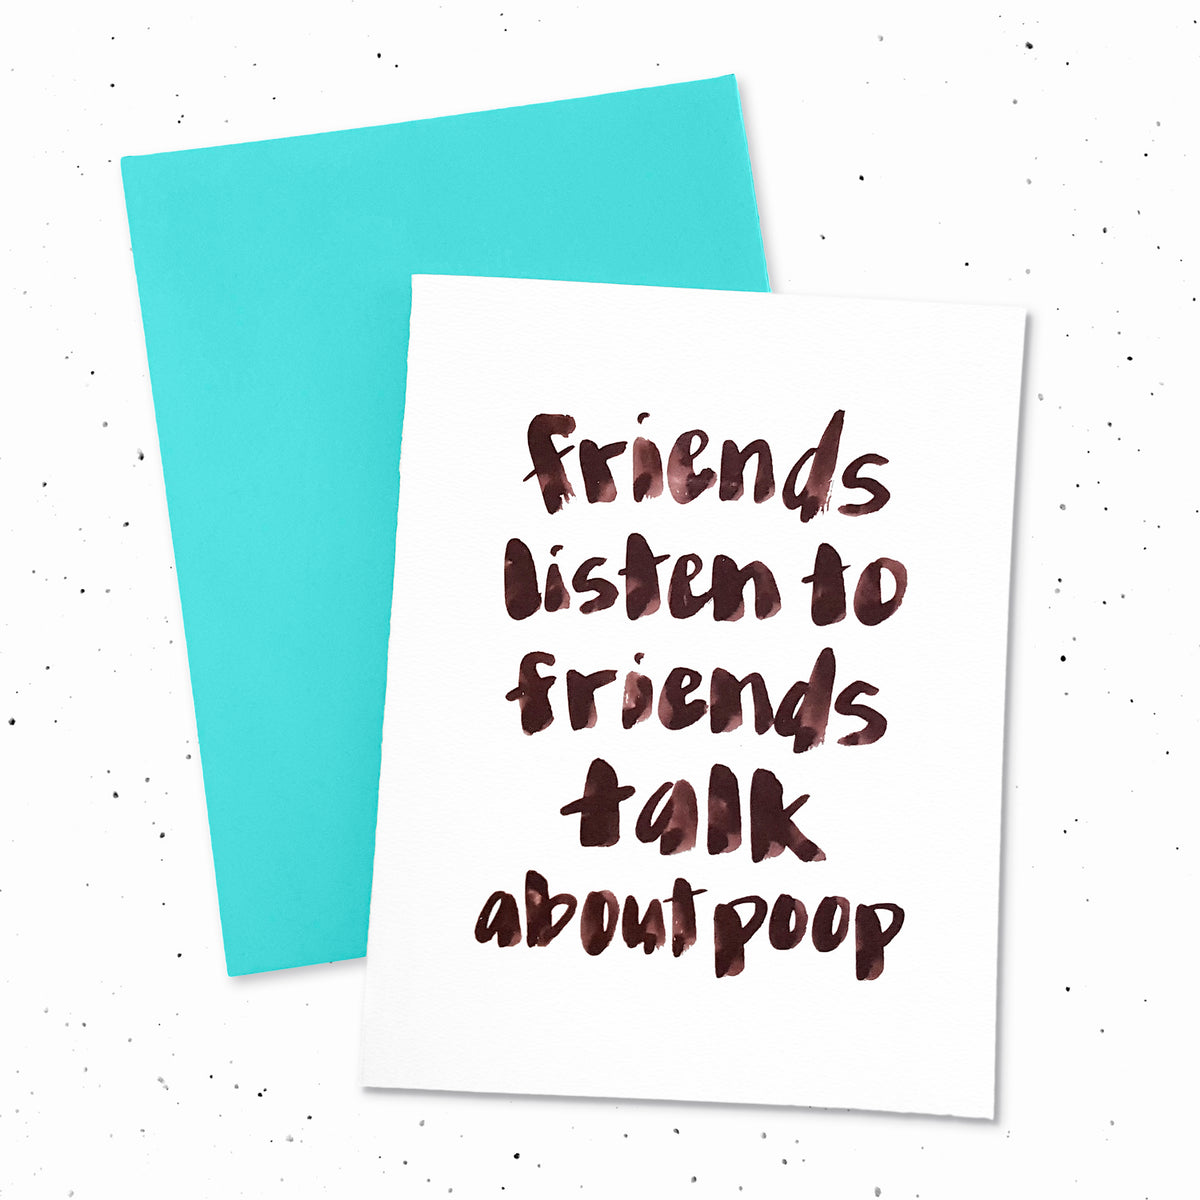 Friends Listen To Friends Talk About Poop - Card with brush lettering typography. Only for the best for friends.